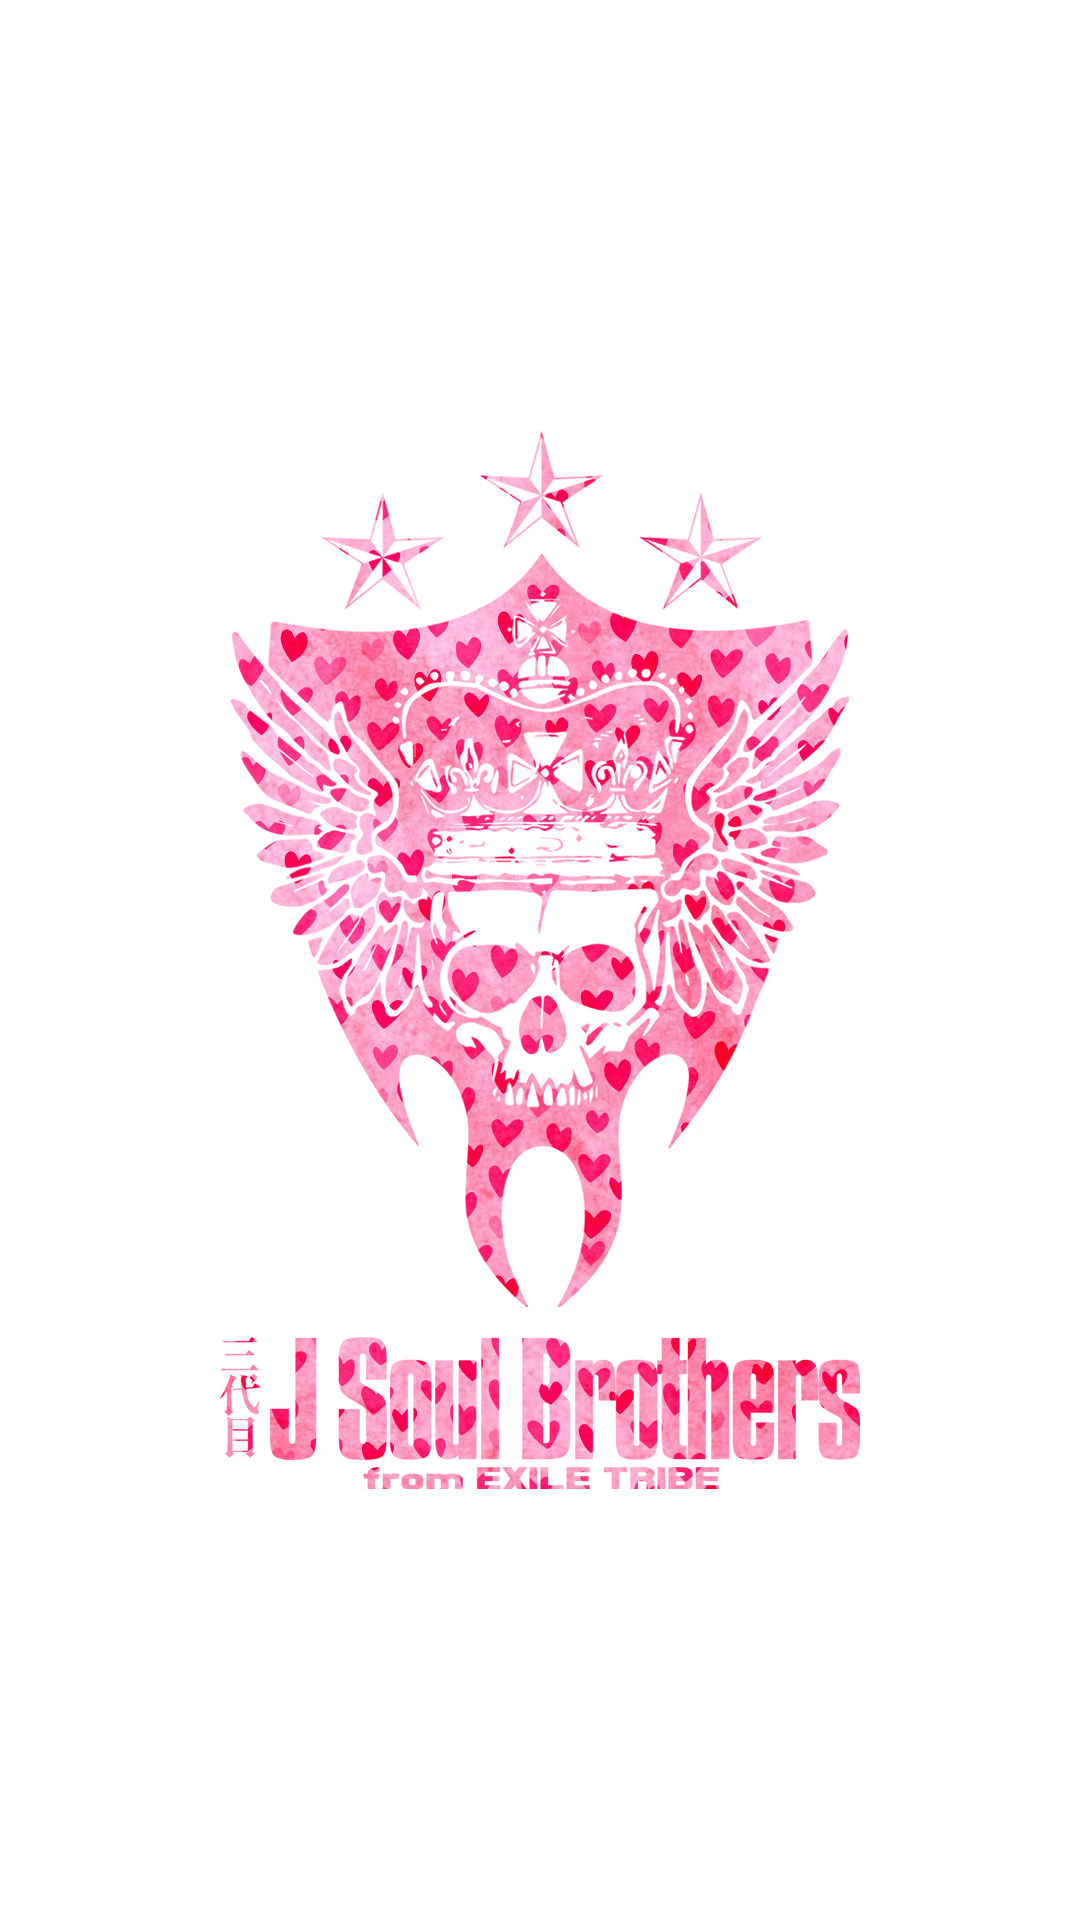 3jsb i22 - 三代目 J SOUL BROTHERSの高画質スマホ壁紙40枚 [iPhone&Androidに対応]